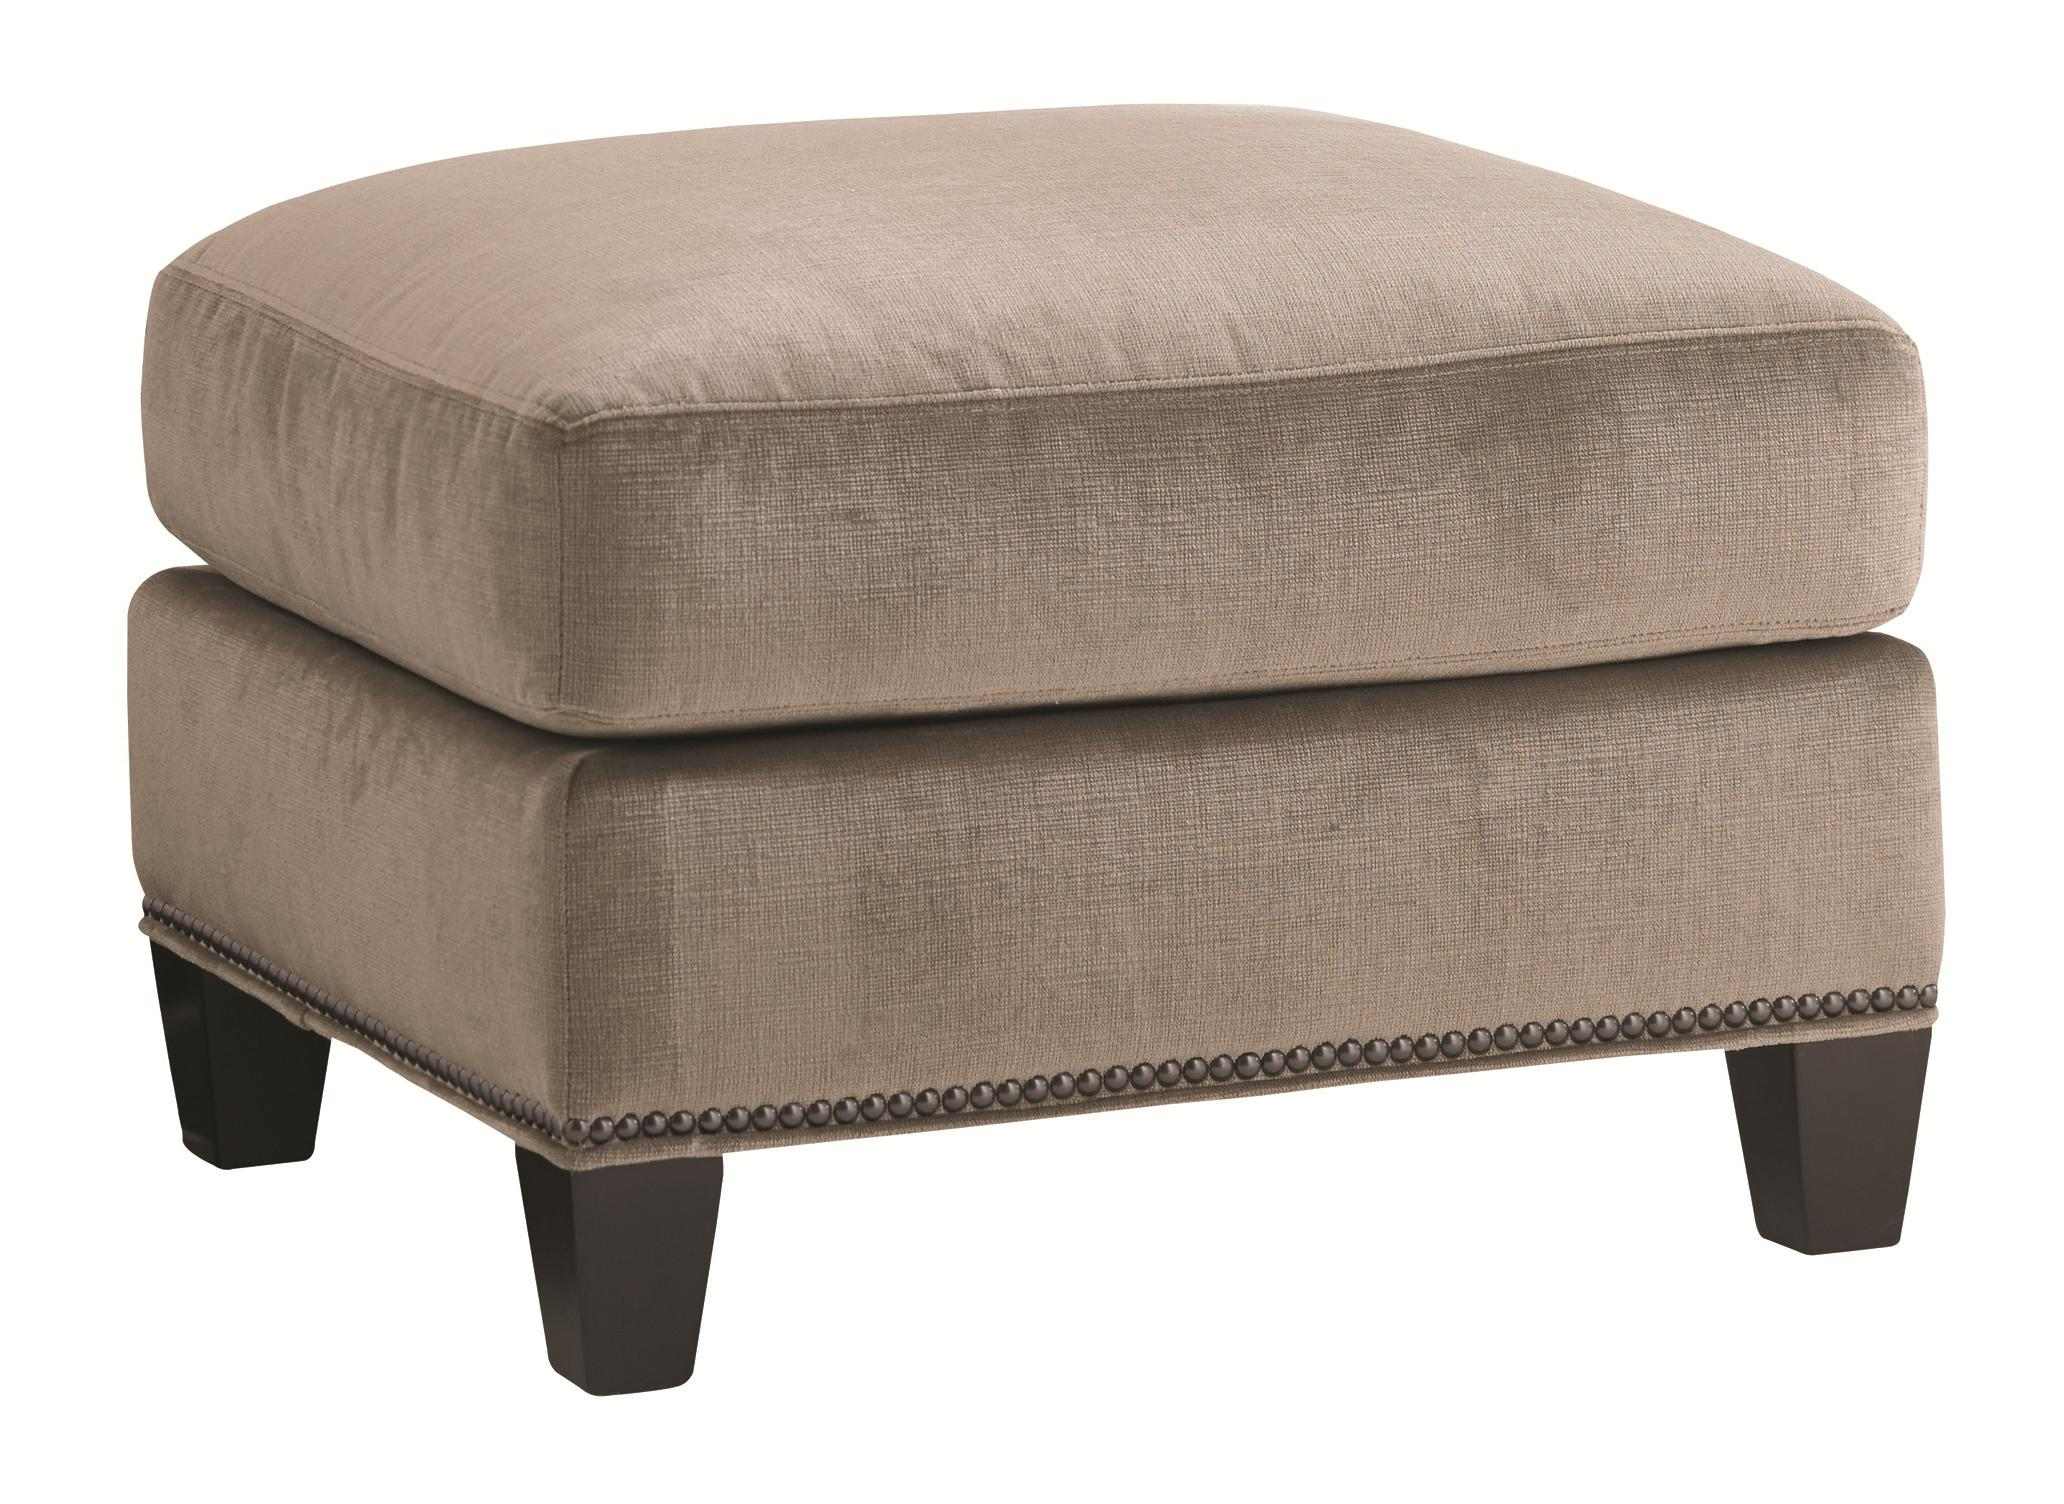 Carrera Strada Ottoman by Lexington at Jacksonville Furniture Mart